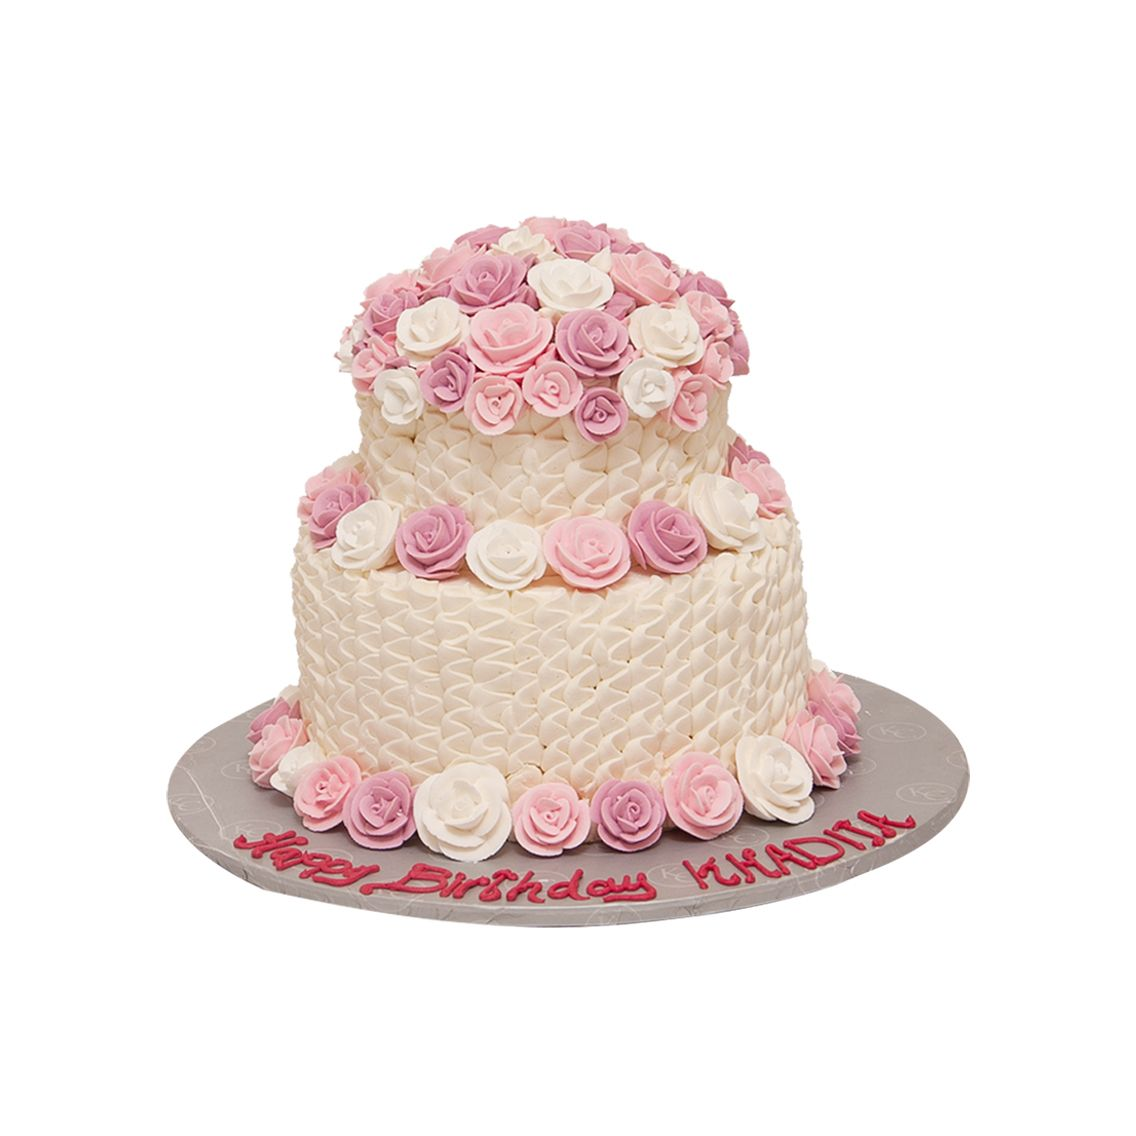 Kitchen Cuisine Default Category Double Tier Cake White & Pink Flower